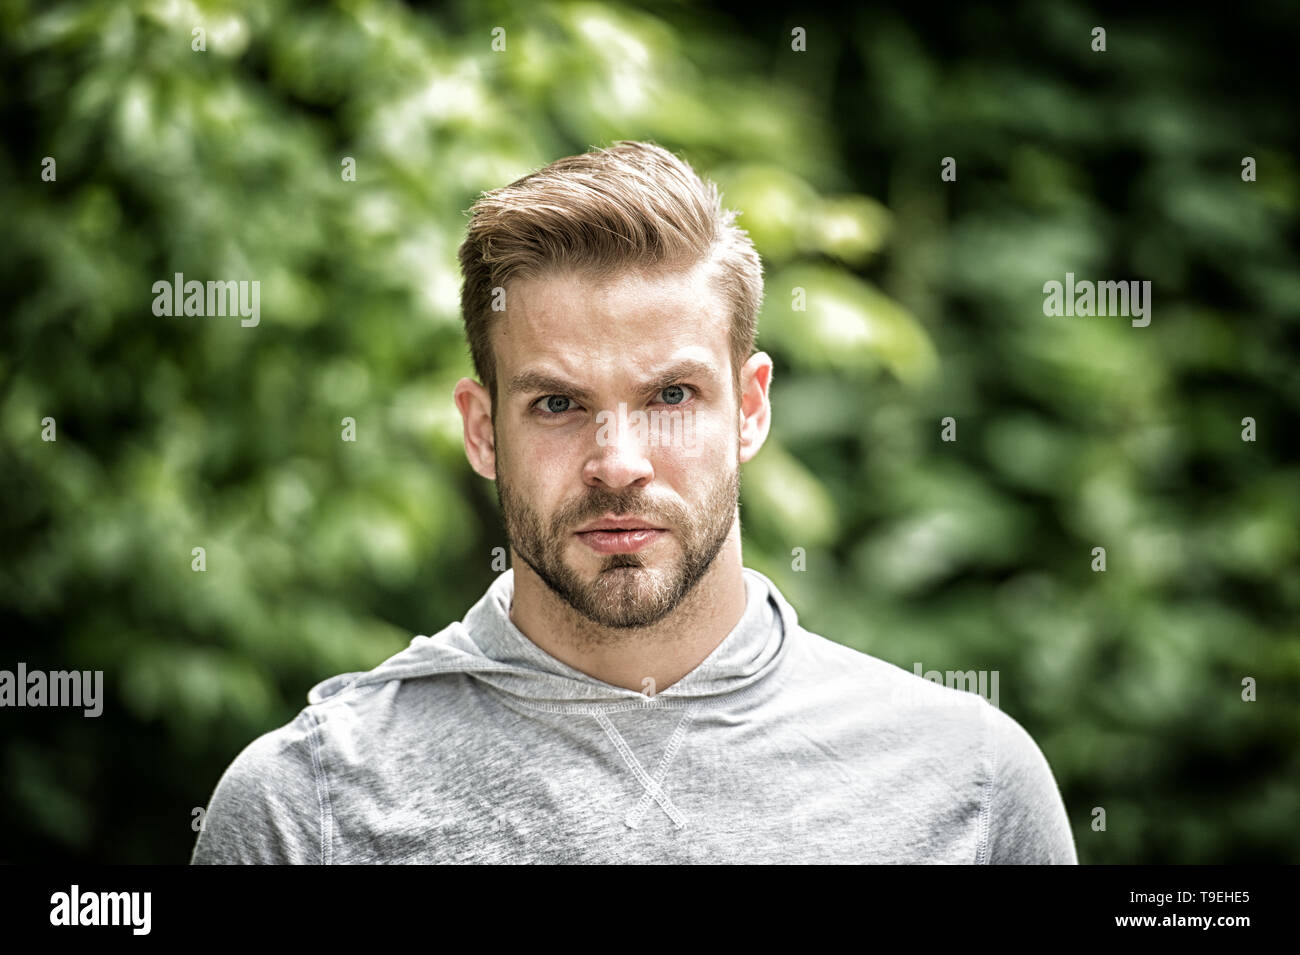 Handsome in style. Guy bearded attractive cares about appearance. Man bristle serious face, green nature background, defocused. Metrosexual concept. M - Stock Image